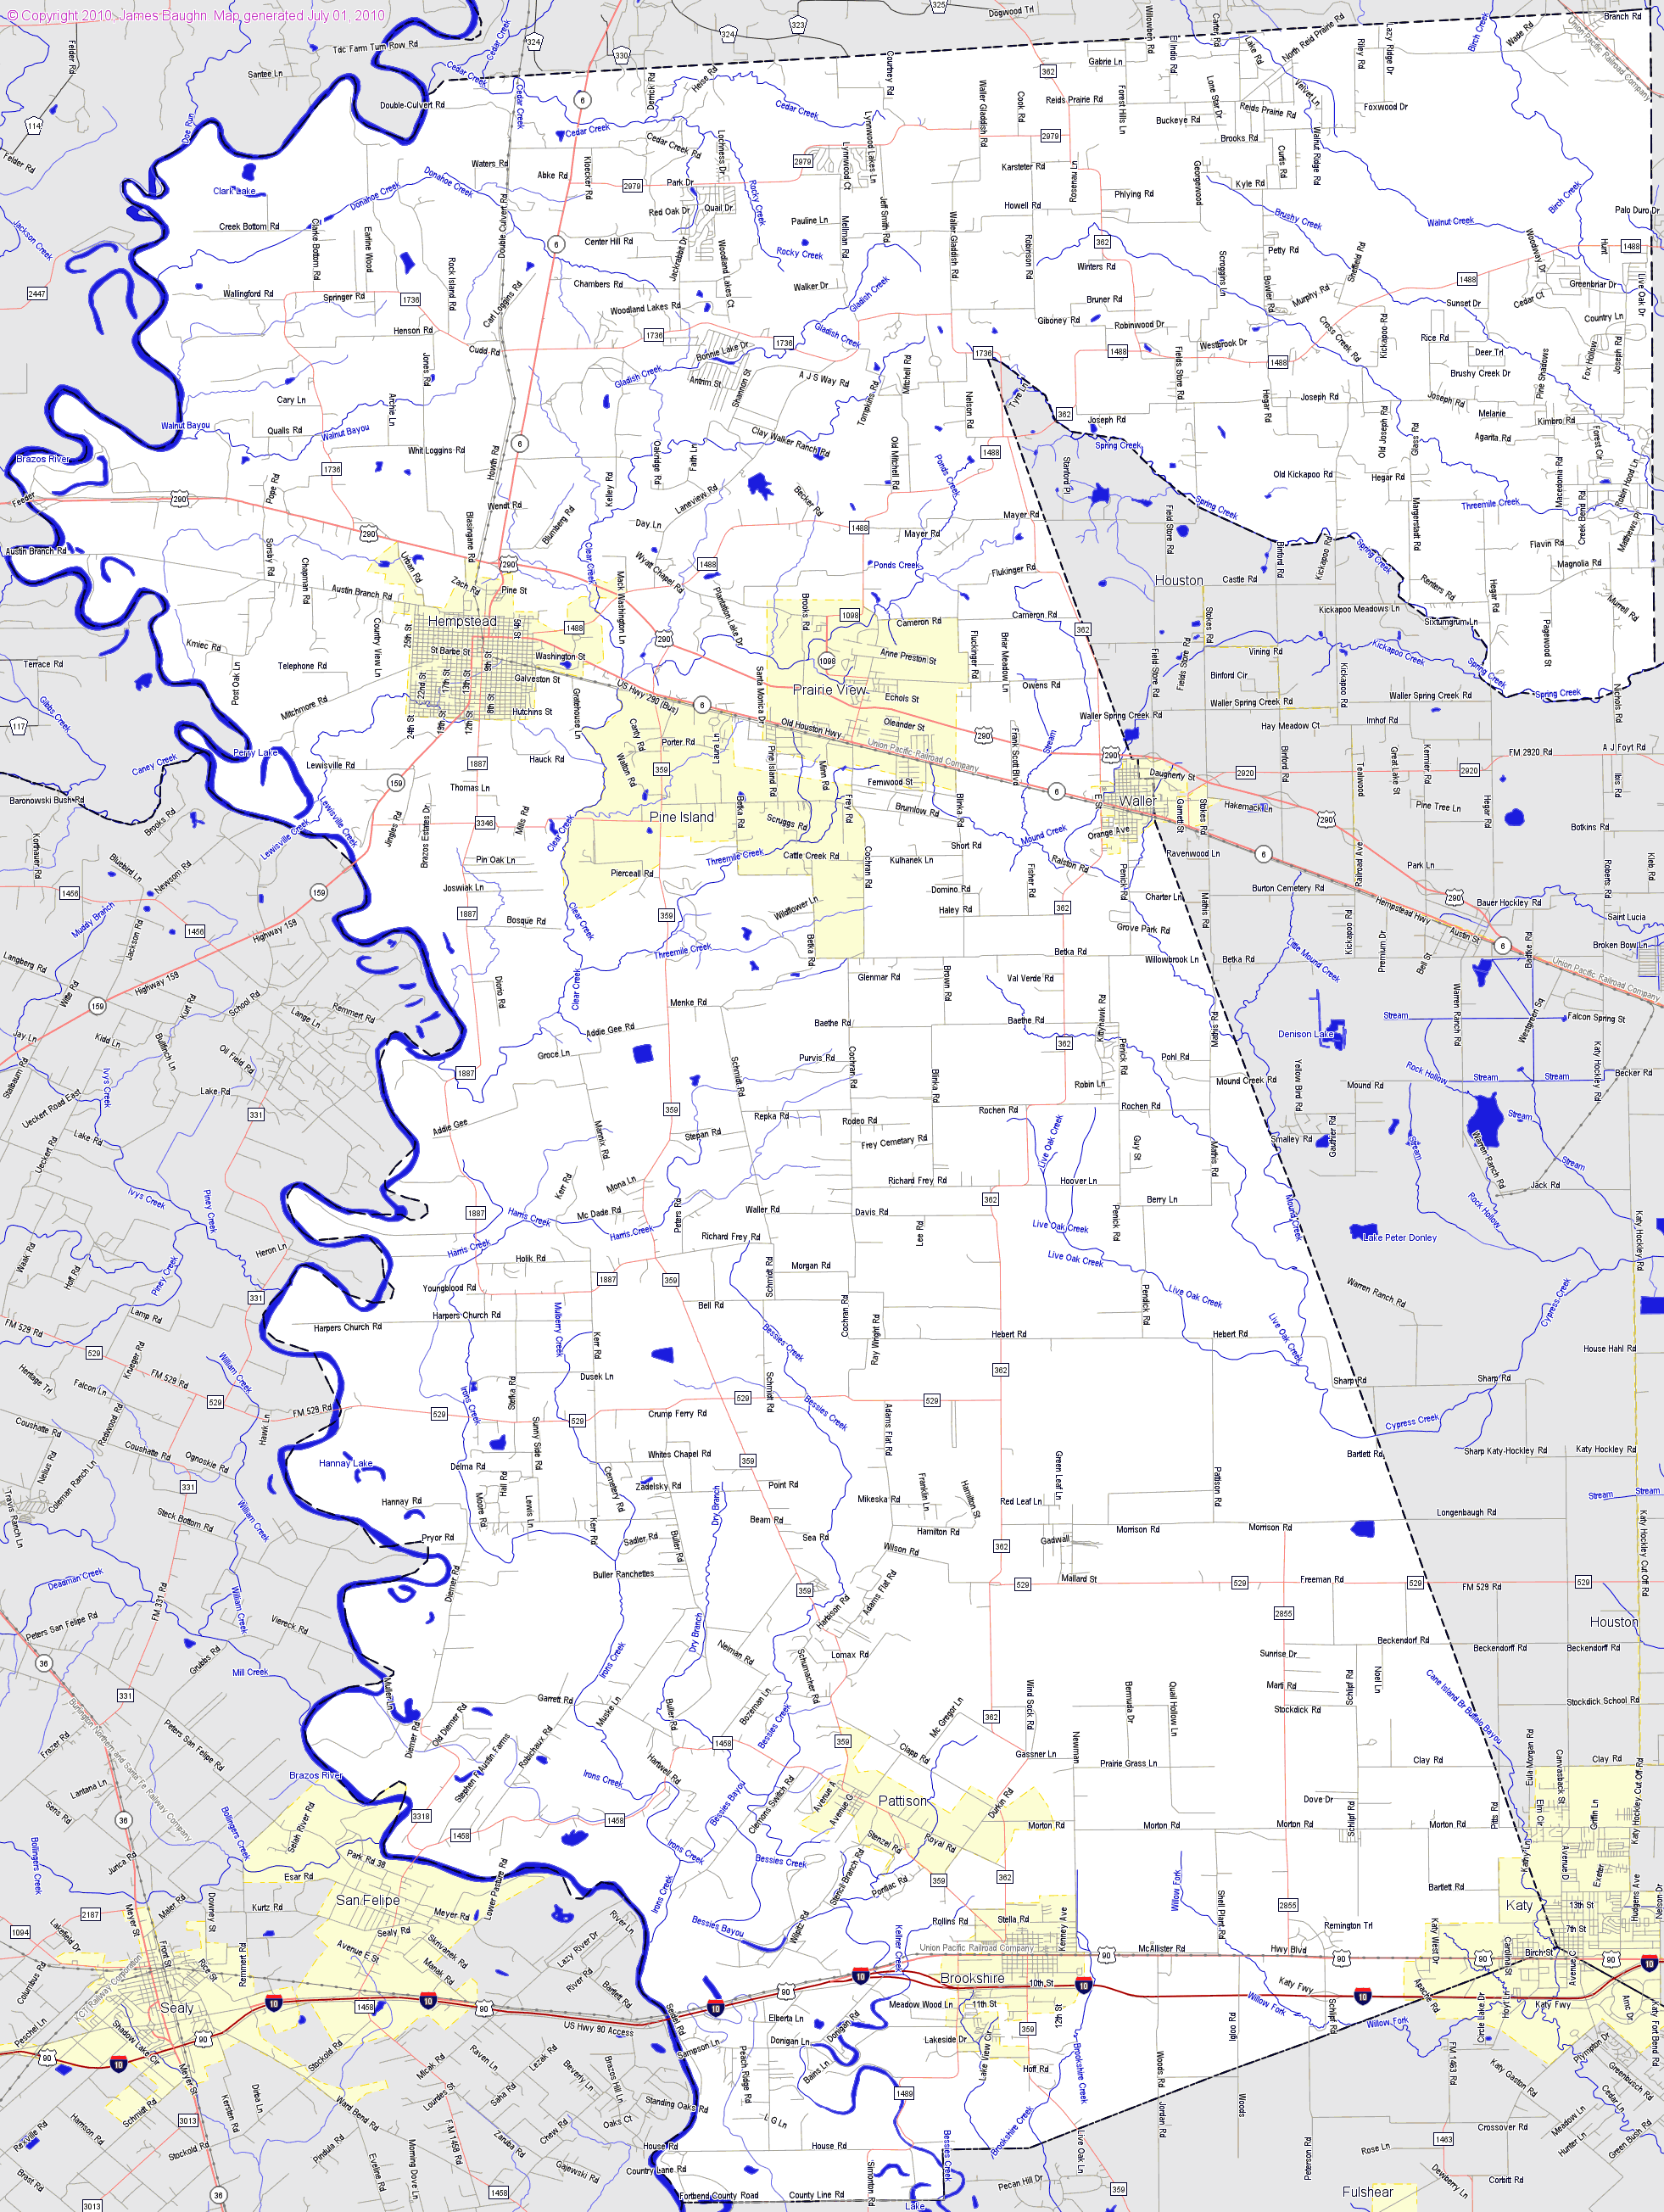 map of fort bend county with Big Map on Lubbock zipcodes further Statecountymap together with Providence Canyon State Park additionally Indiana Map further 2013 Metros Houston Tx.